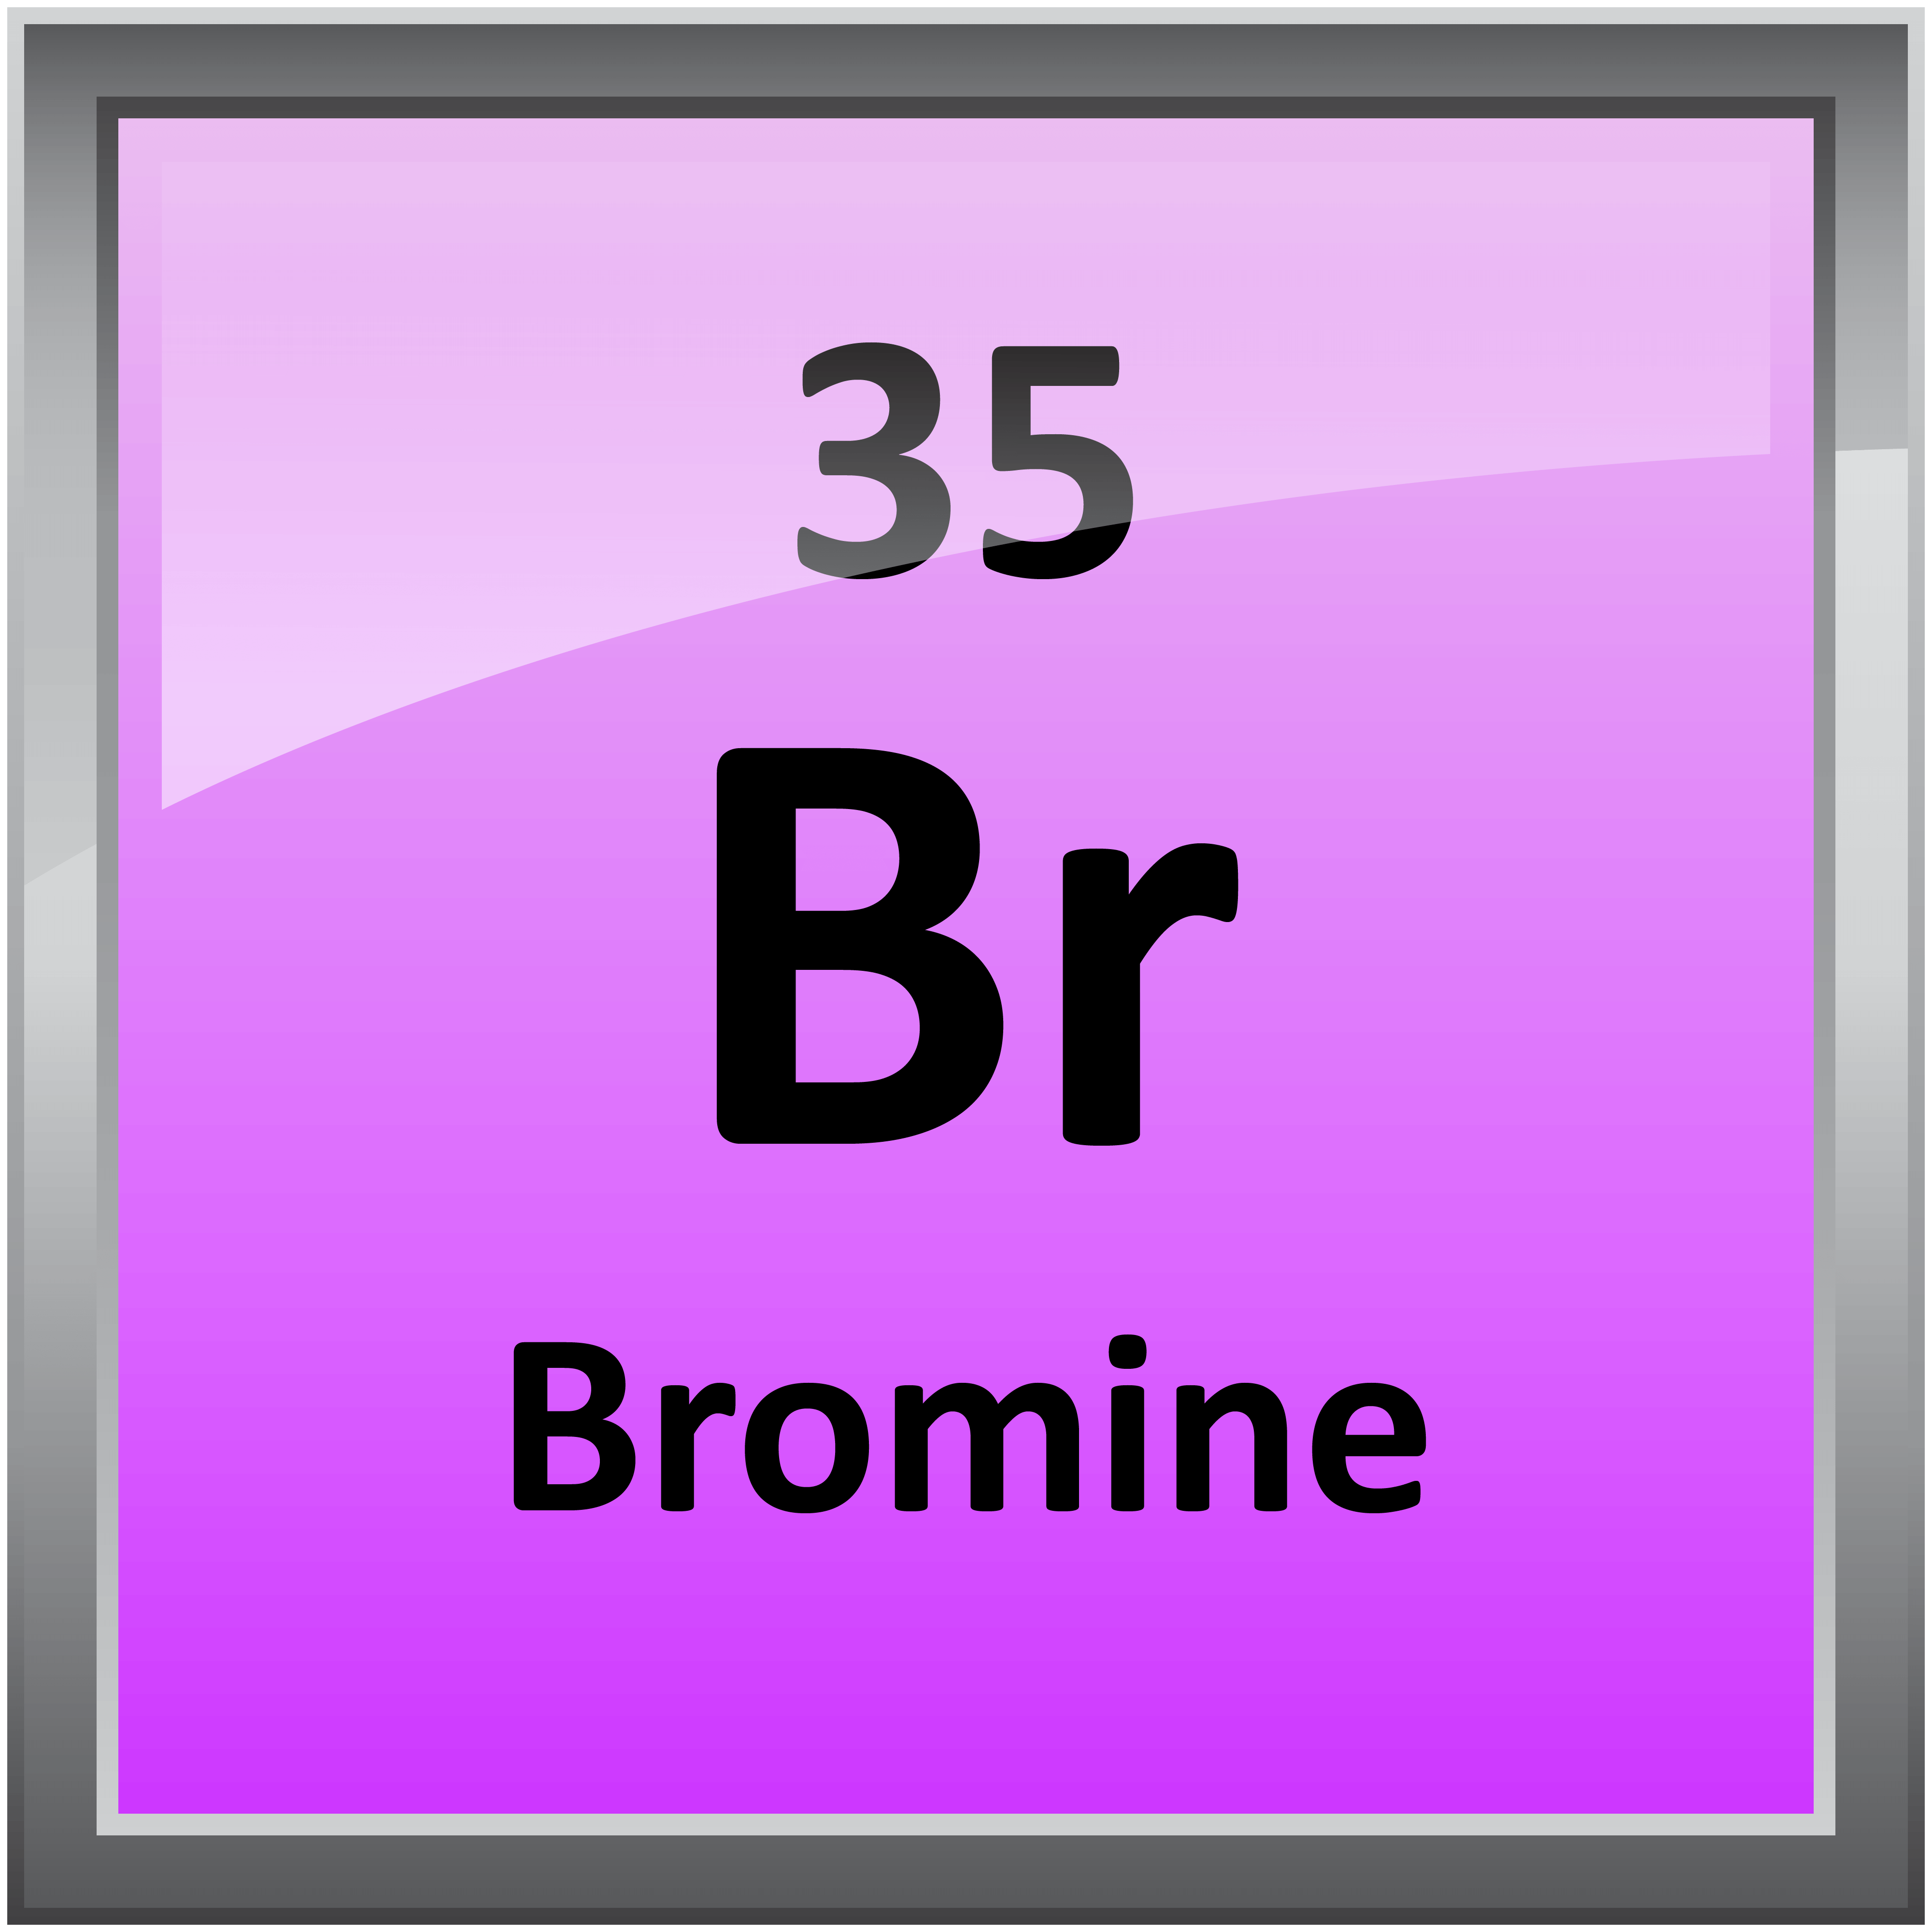 035-Bromine - Science Notes and Projects